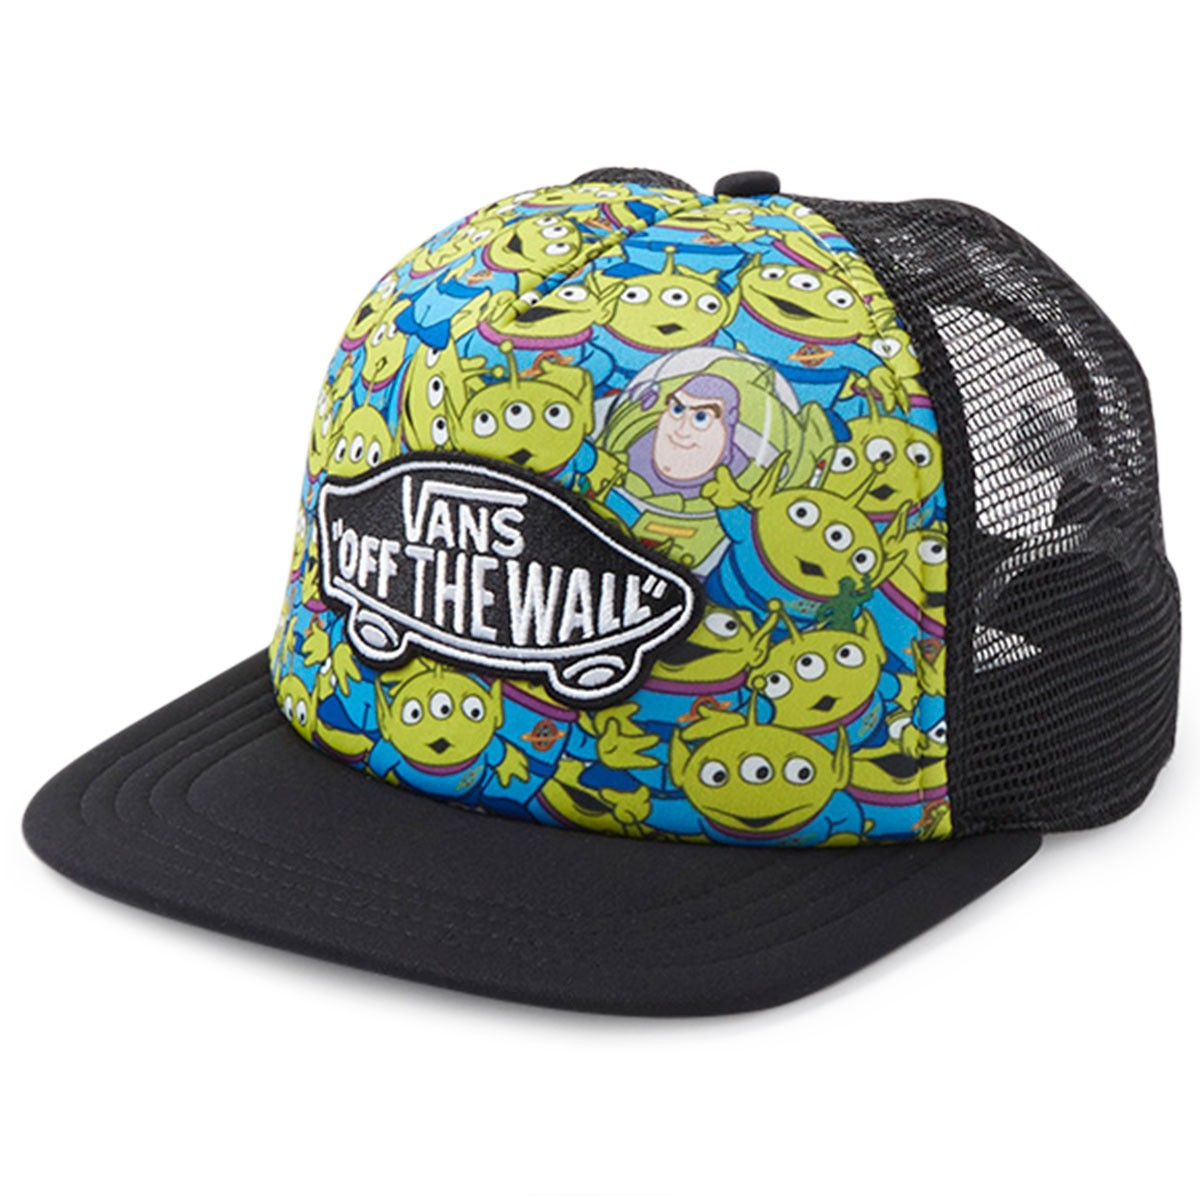 Vans X Disney Classic Patch Plus Trucker Hat - Aliens 61e25cb2c22